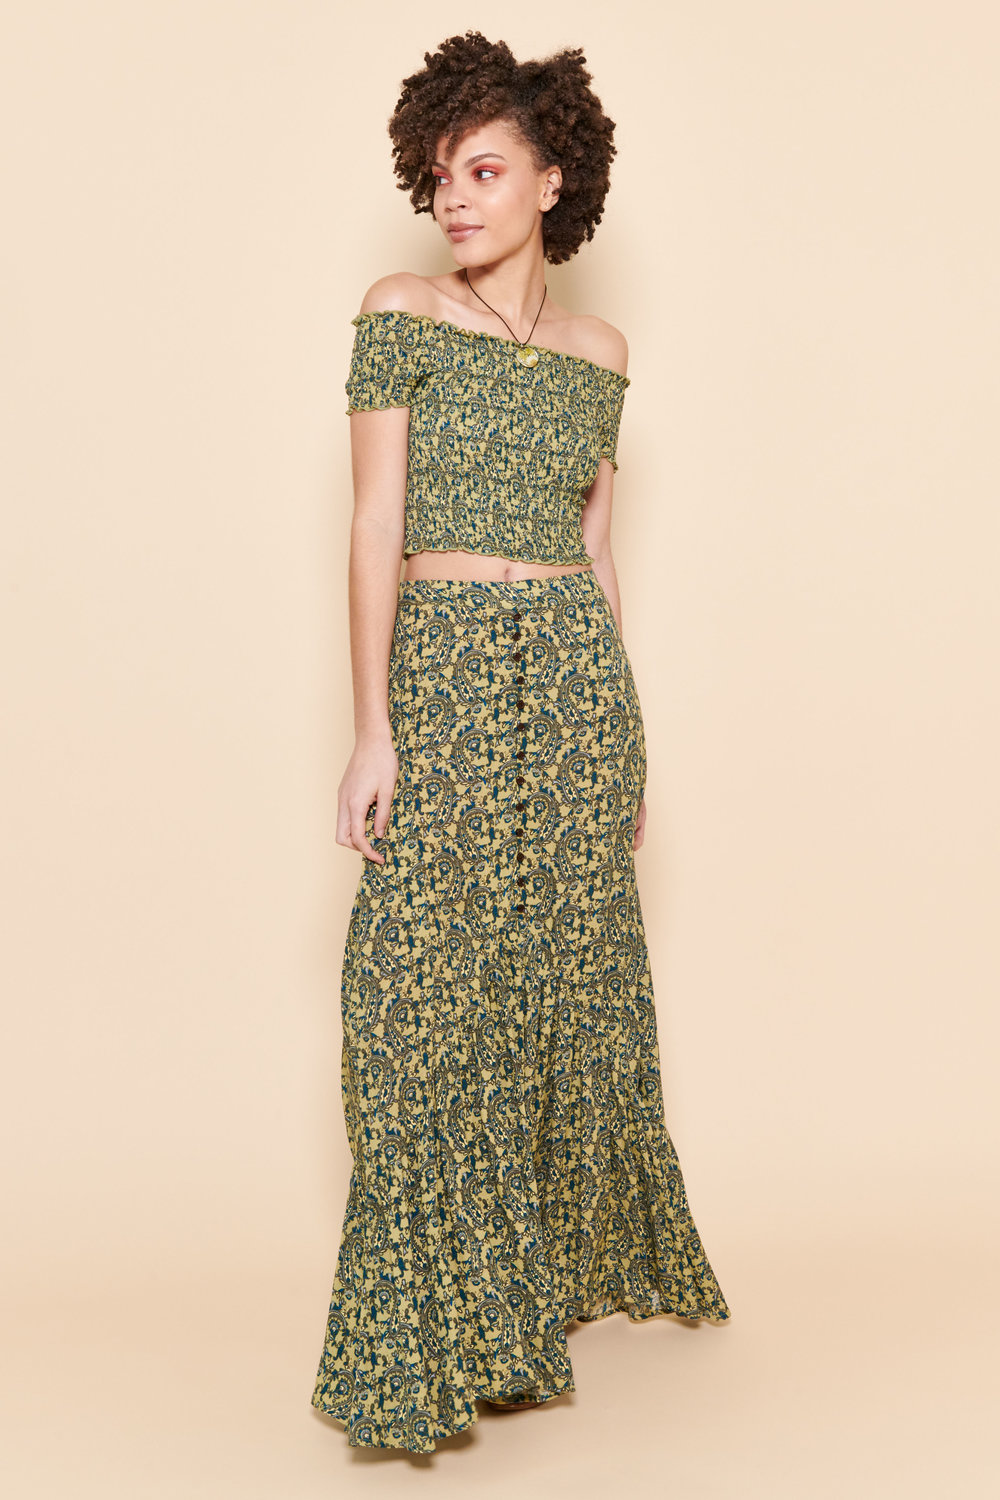 61492-SkirtGreenPrinted-1356_551.jpg